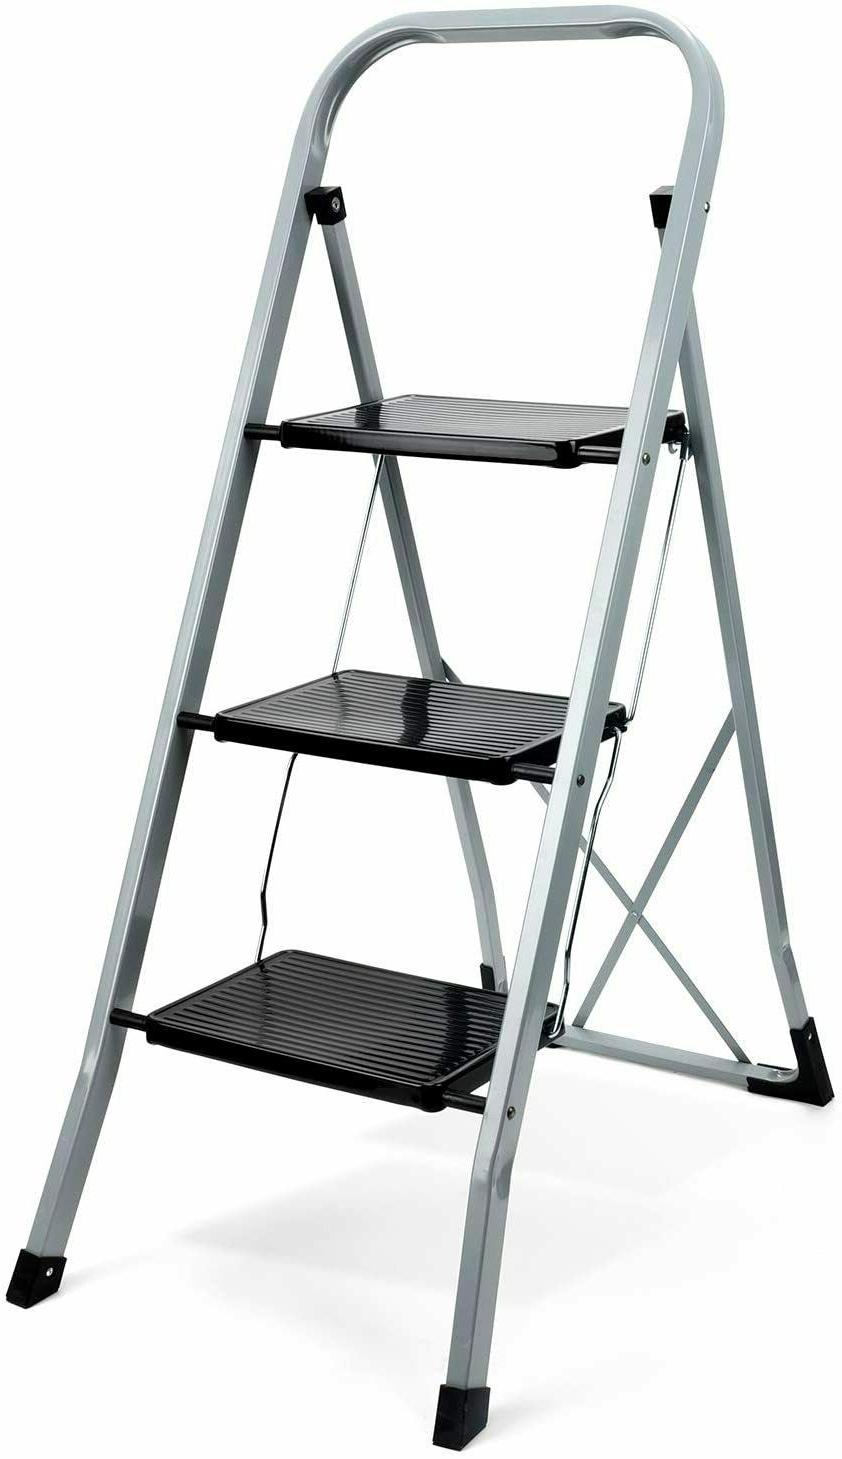 3 & 4 Step Ladder Folding Step Stool w/ Handgrip & Wide Peda